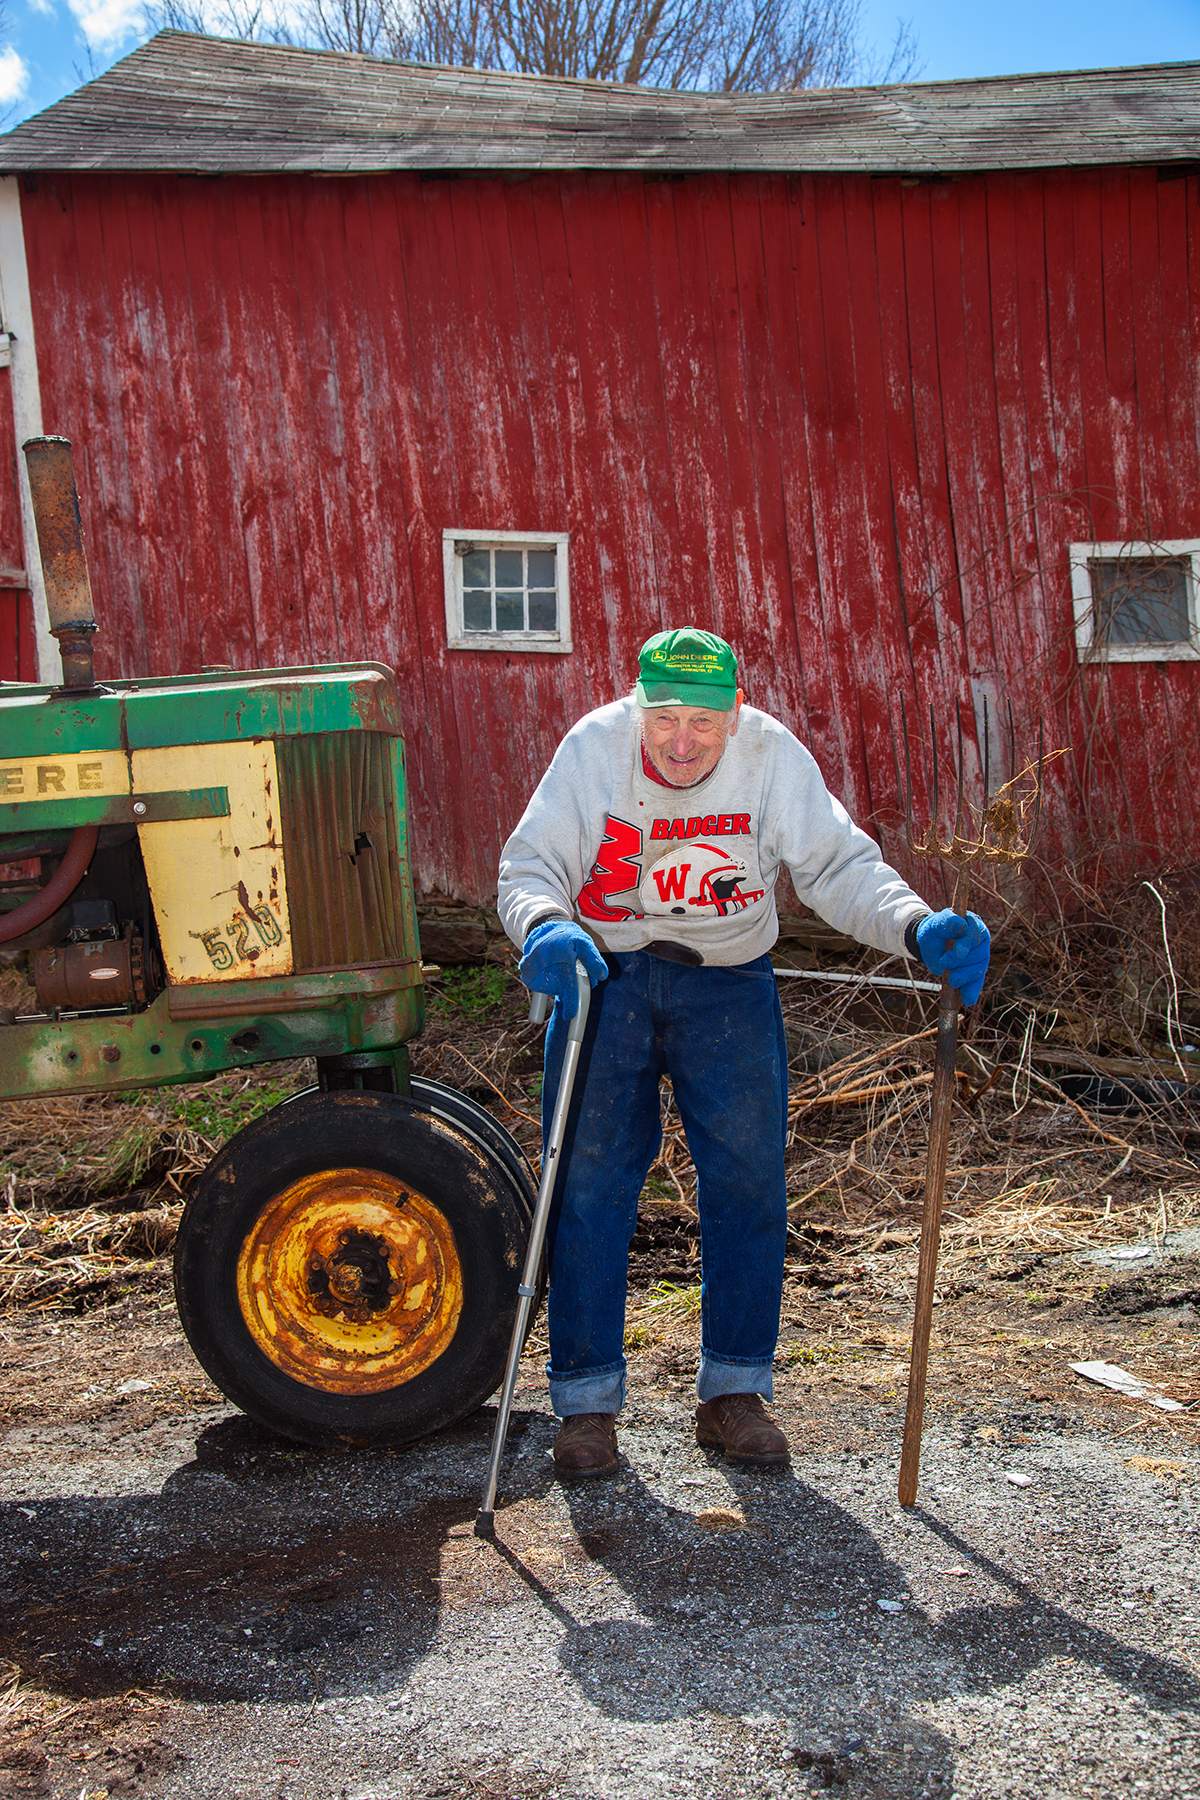 FARMER-PORTRAIT-LOU-NEW-MILFORD-CT-©-JONATHAN-R.-BECKERMAN-PHOTOGRAPHY-032917-02.jpg